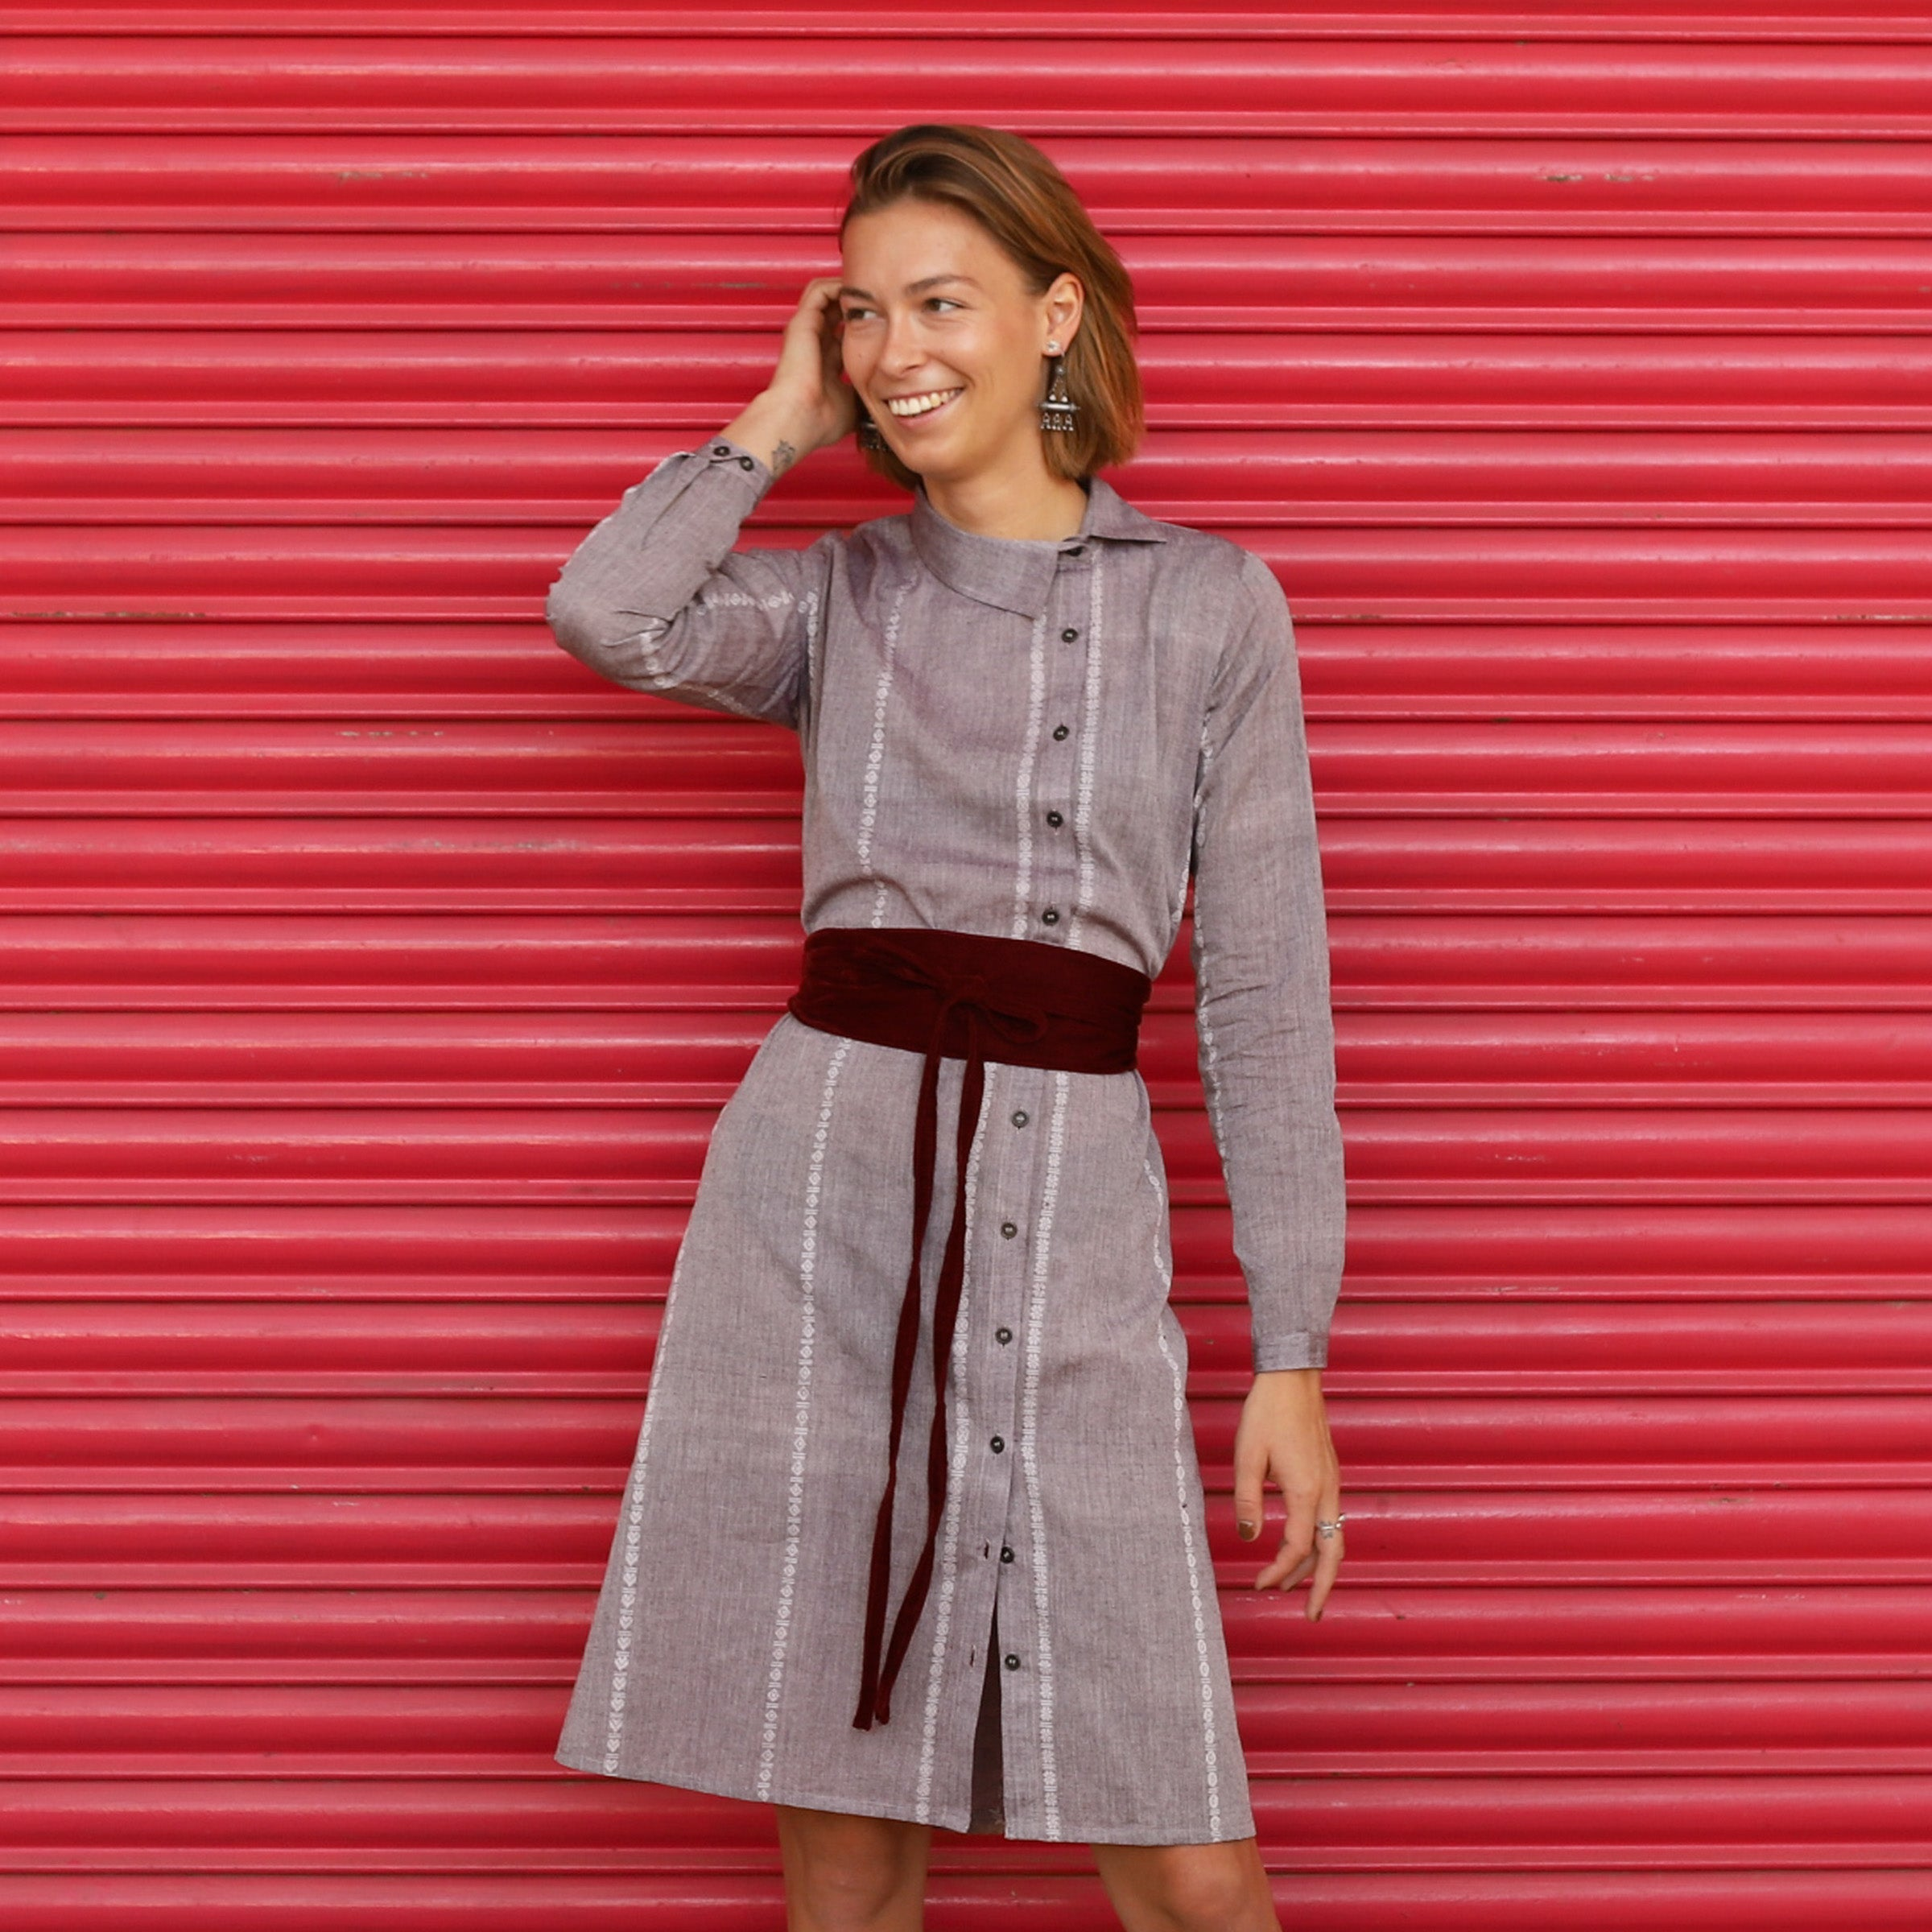 Pomogrenade_Grey shirt dress_Front